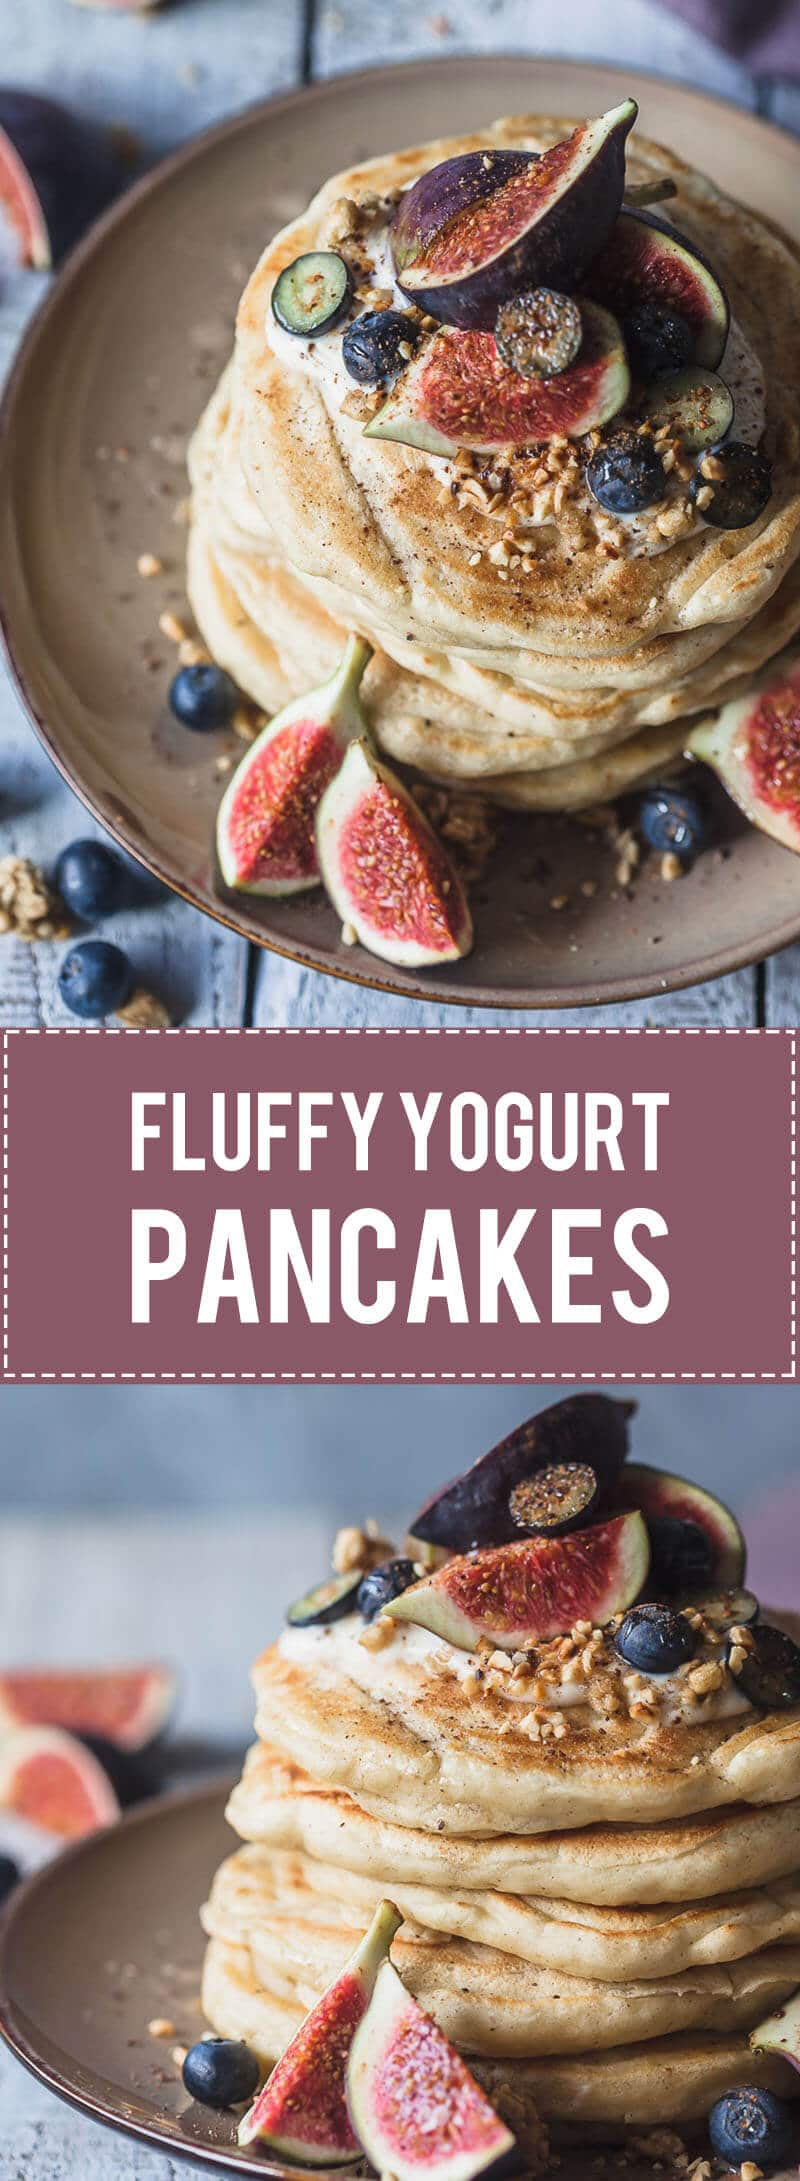 Delicious and Fluffy Yogurt Pancakes are a perfect start to your day. These pancakes are dairy-free! #pancakes #figs #breakfast